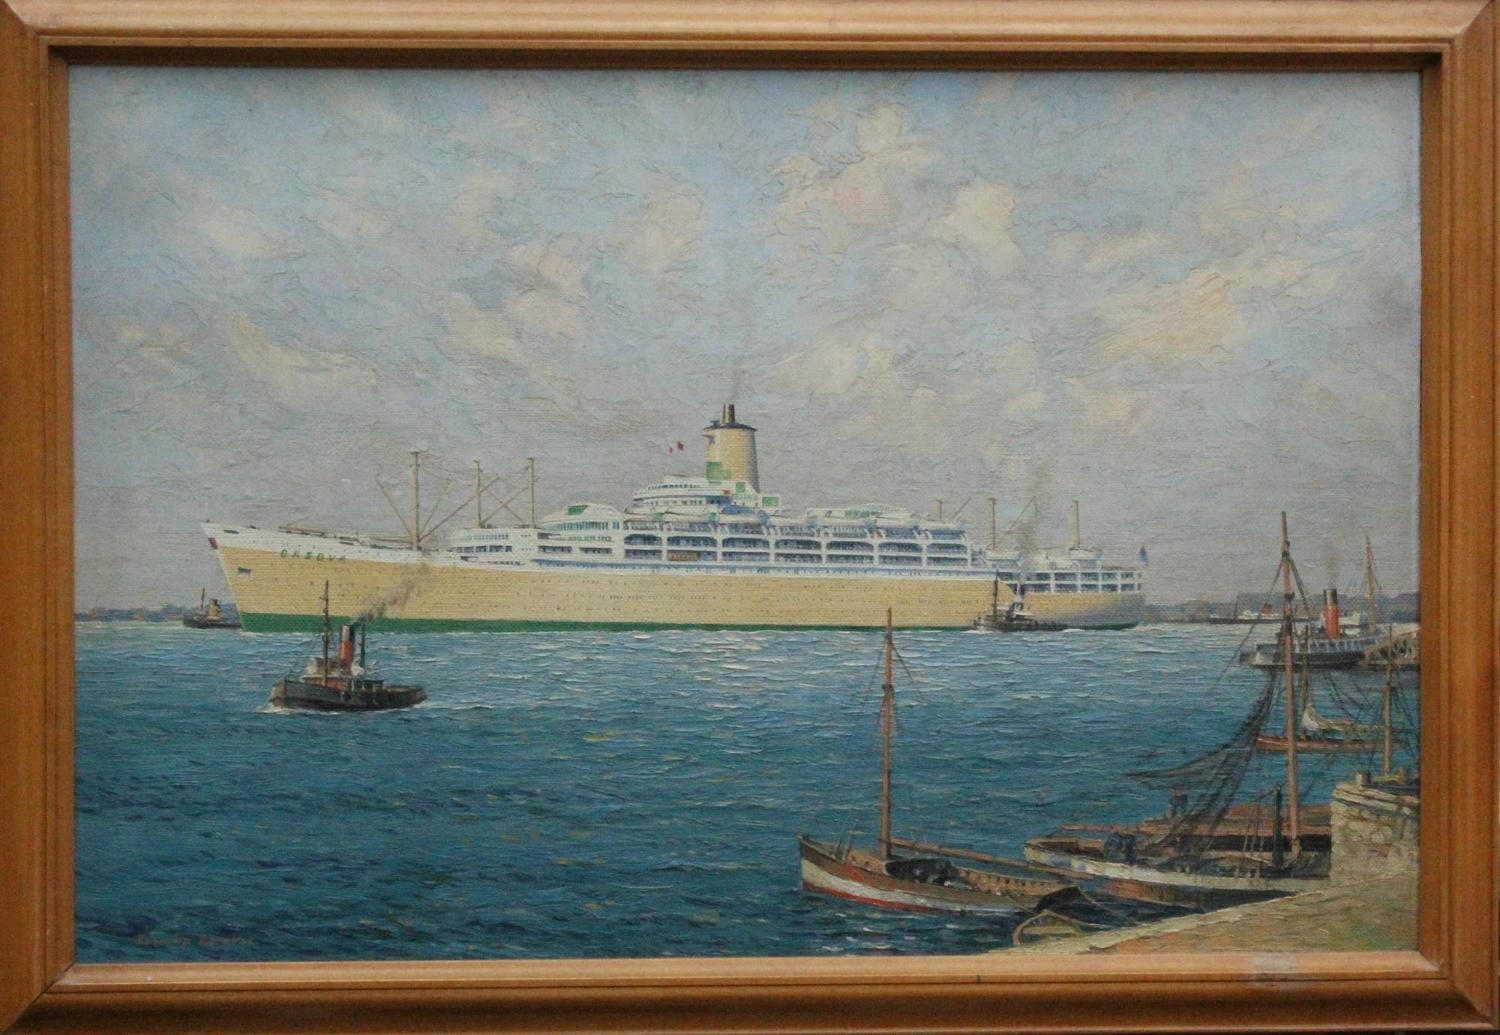 Edward Beckett Oil Painting of SS Orsova